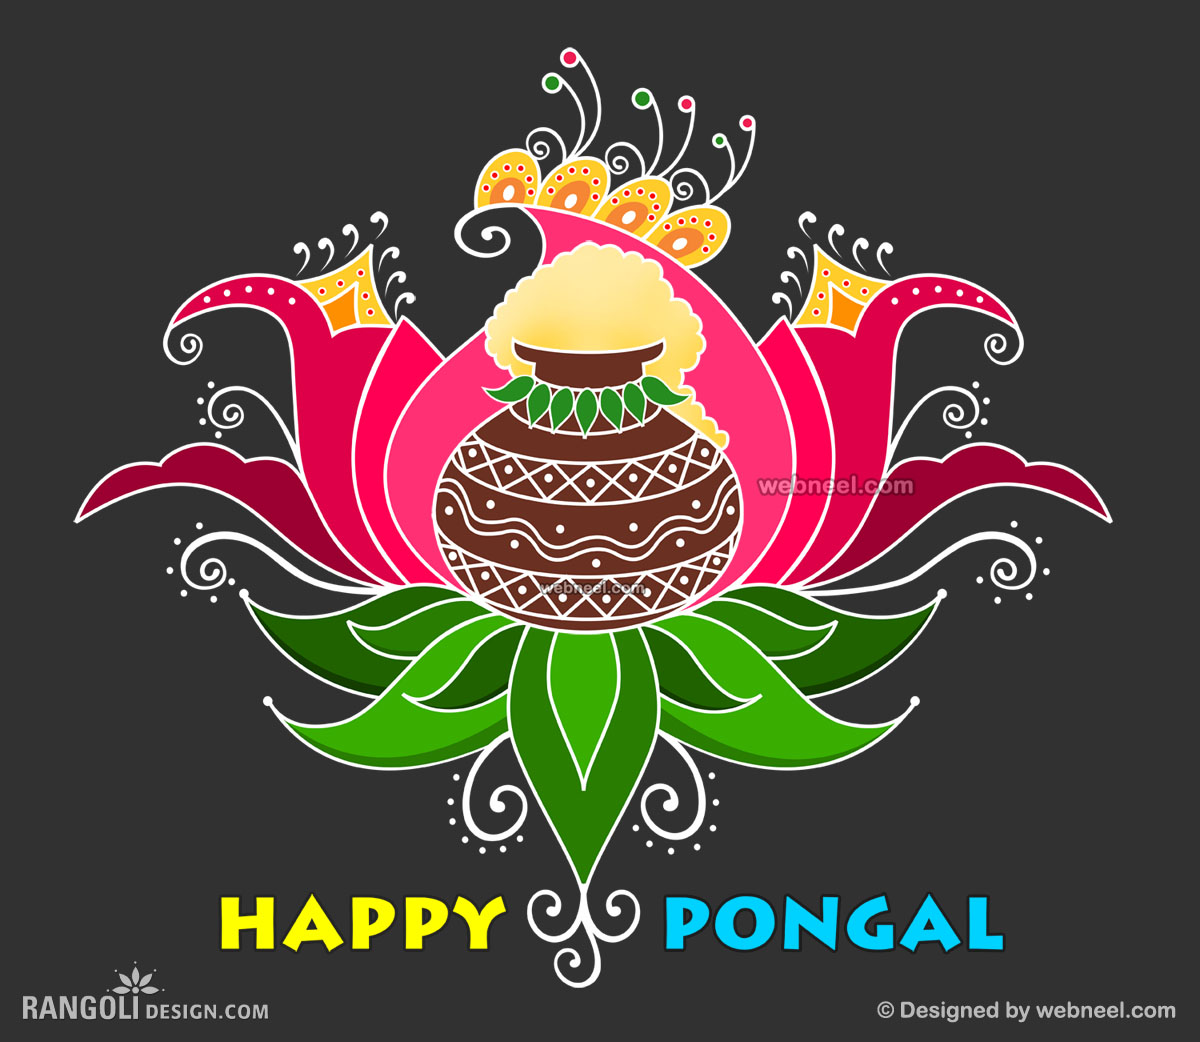 25 Beautiful Pongal Greeting Cards And Design Ideas In Tamil